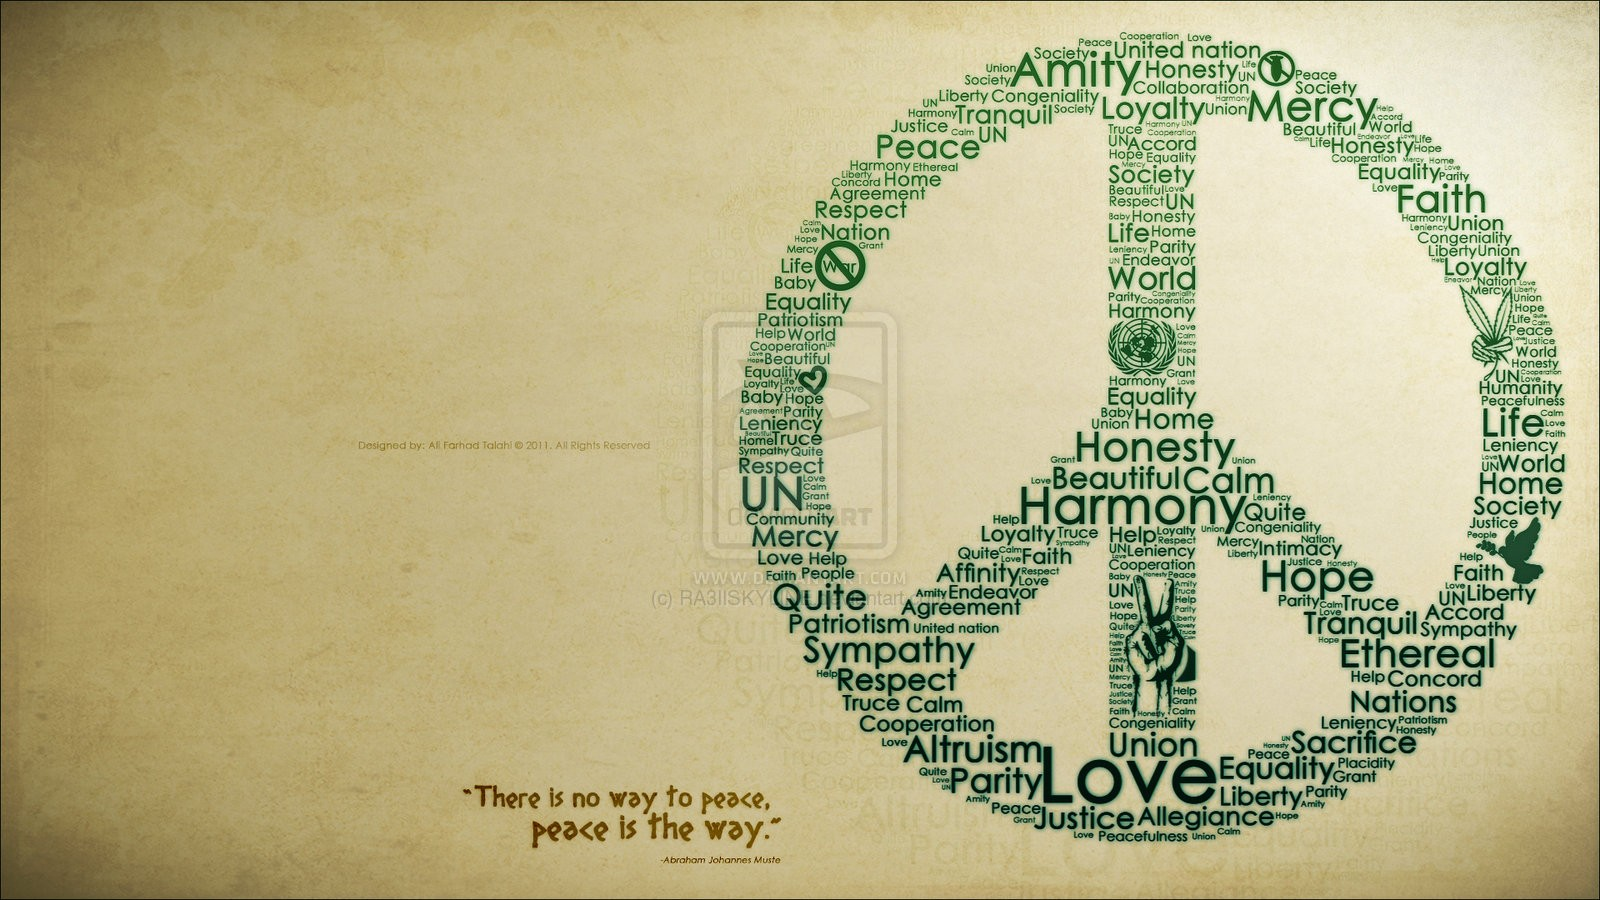 Peace Desktop Wallpaper   HD Wallpapers Backgrounds of Your Choice 1600x900